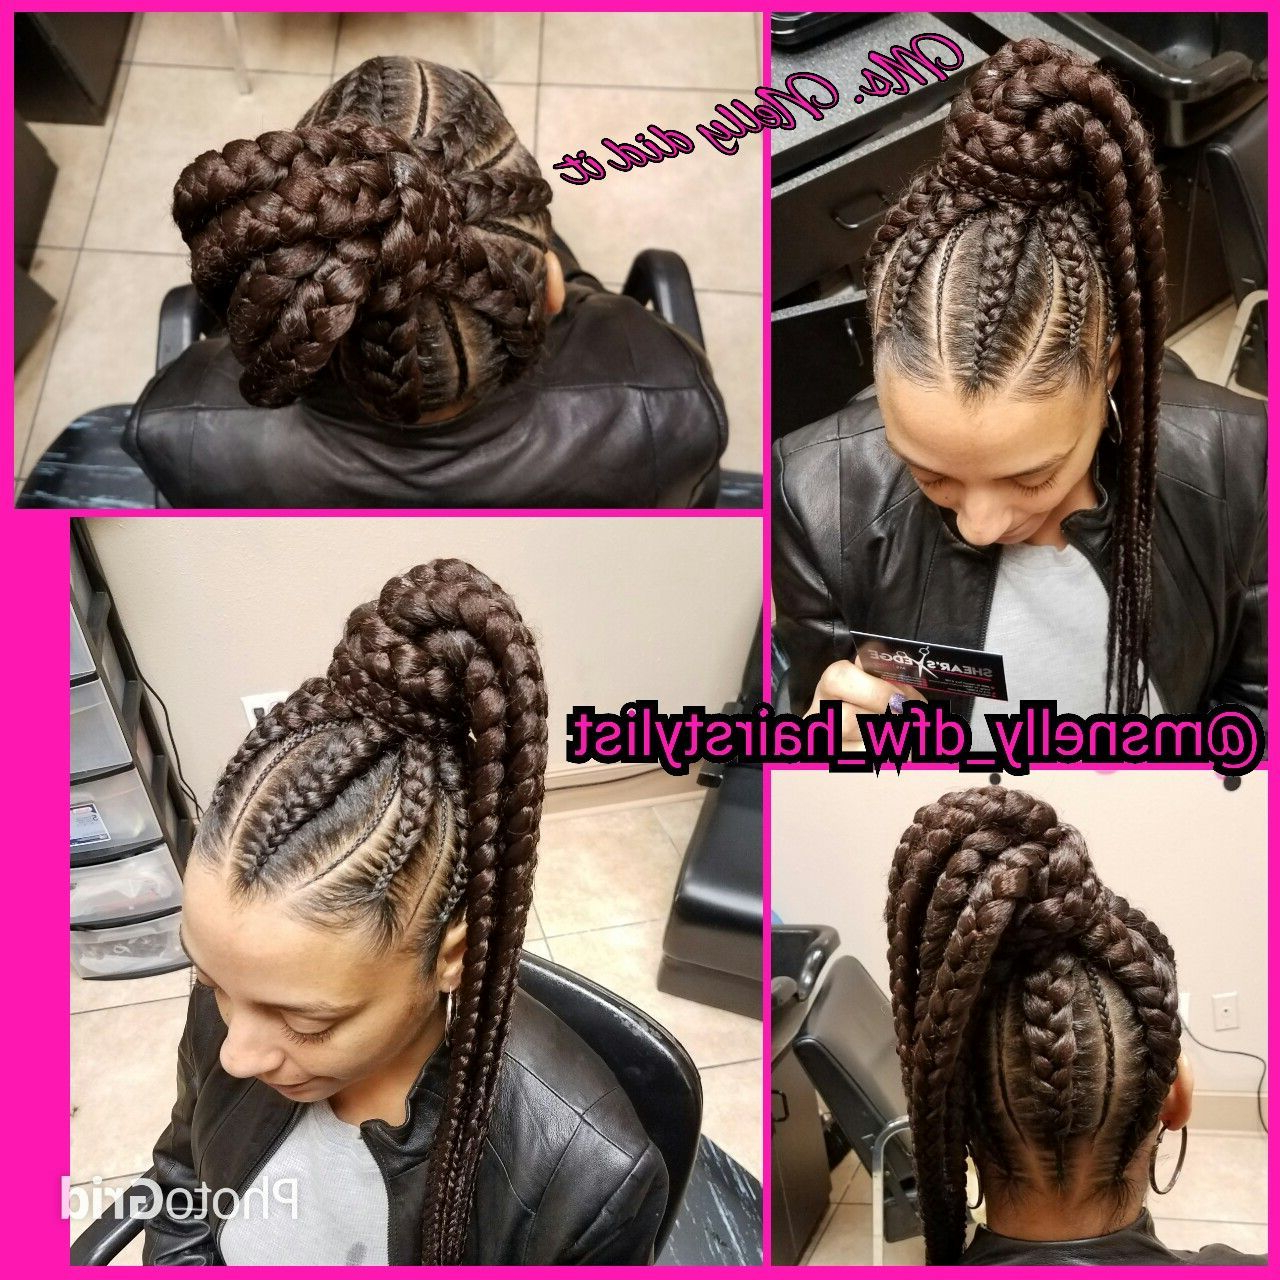 High Ponytail Feeder Braids, Small Braids In Between Pertaining To Trendy High Ponytail Braided Hairstyles (Gallery 2 of 20)